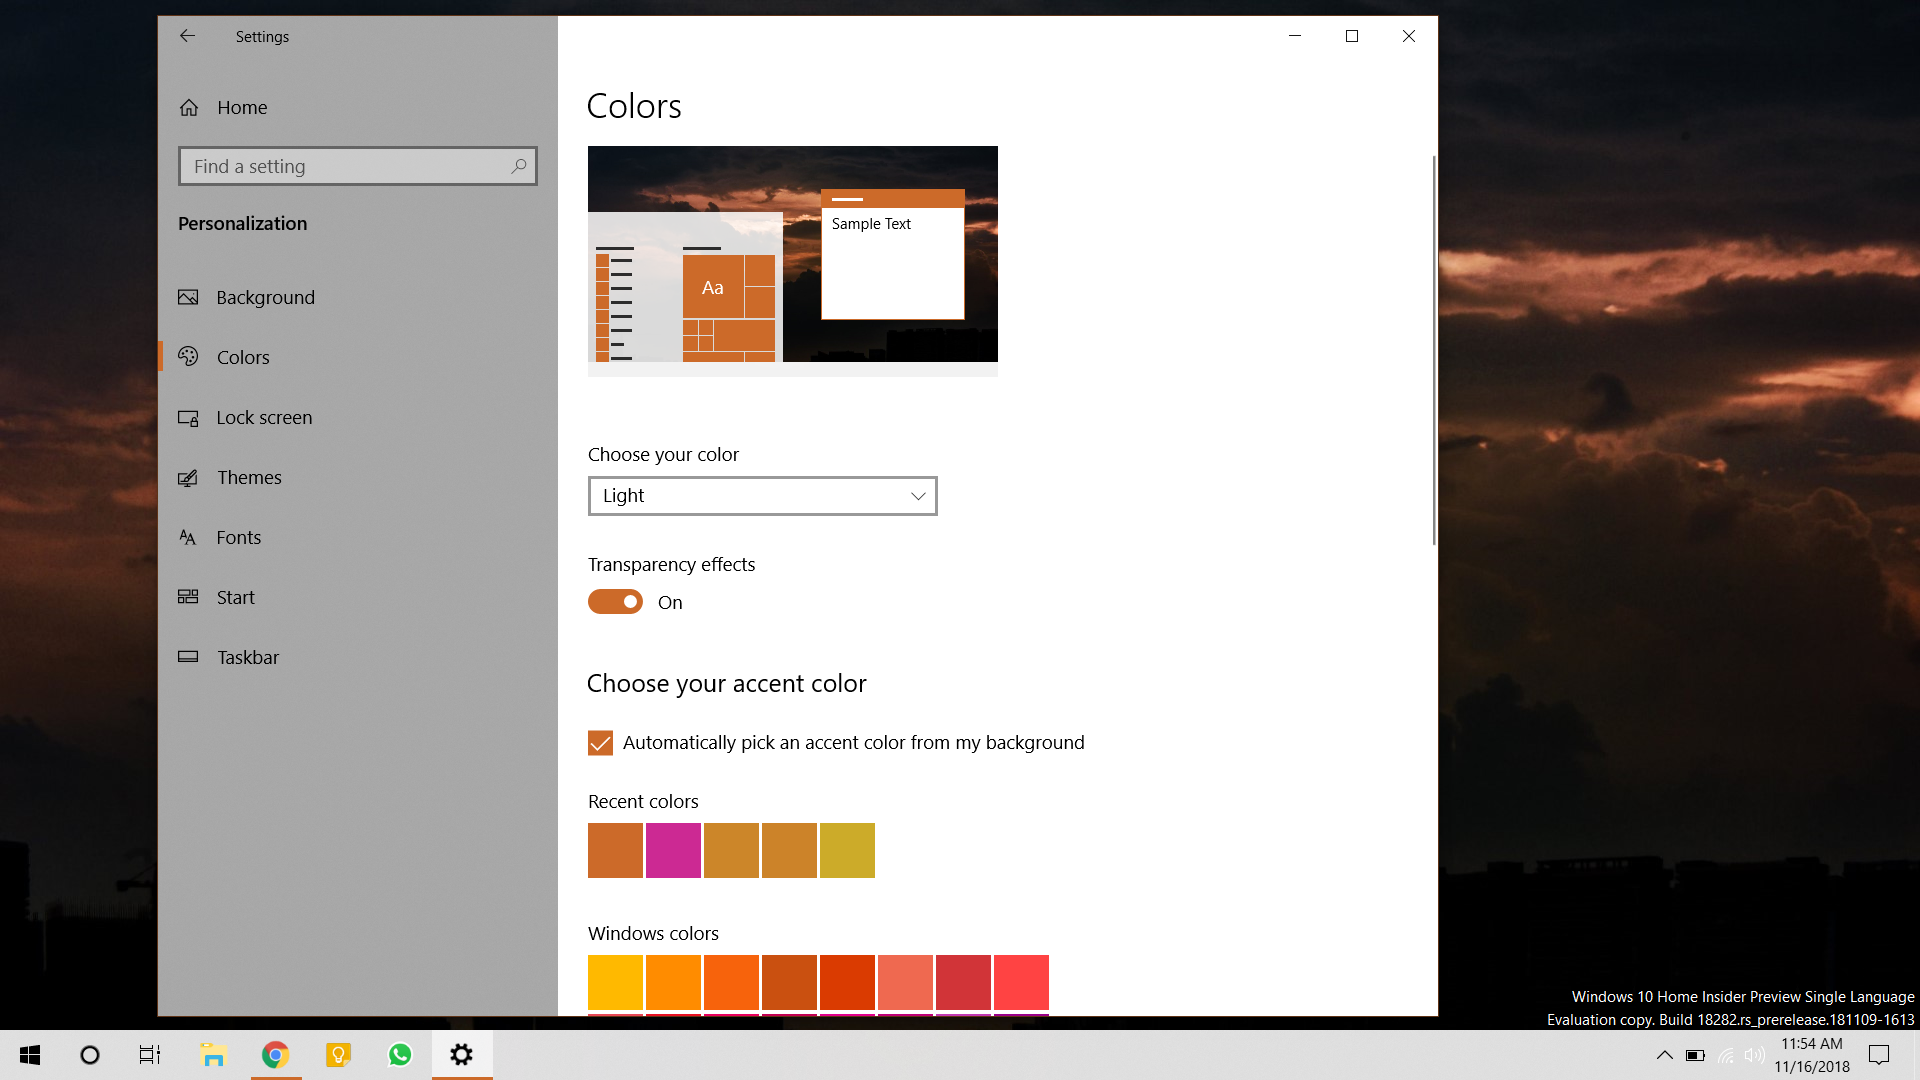 Light theme in Windows 10 Insider Preview